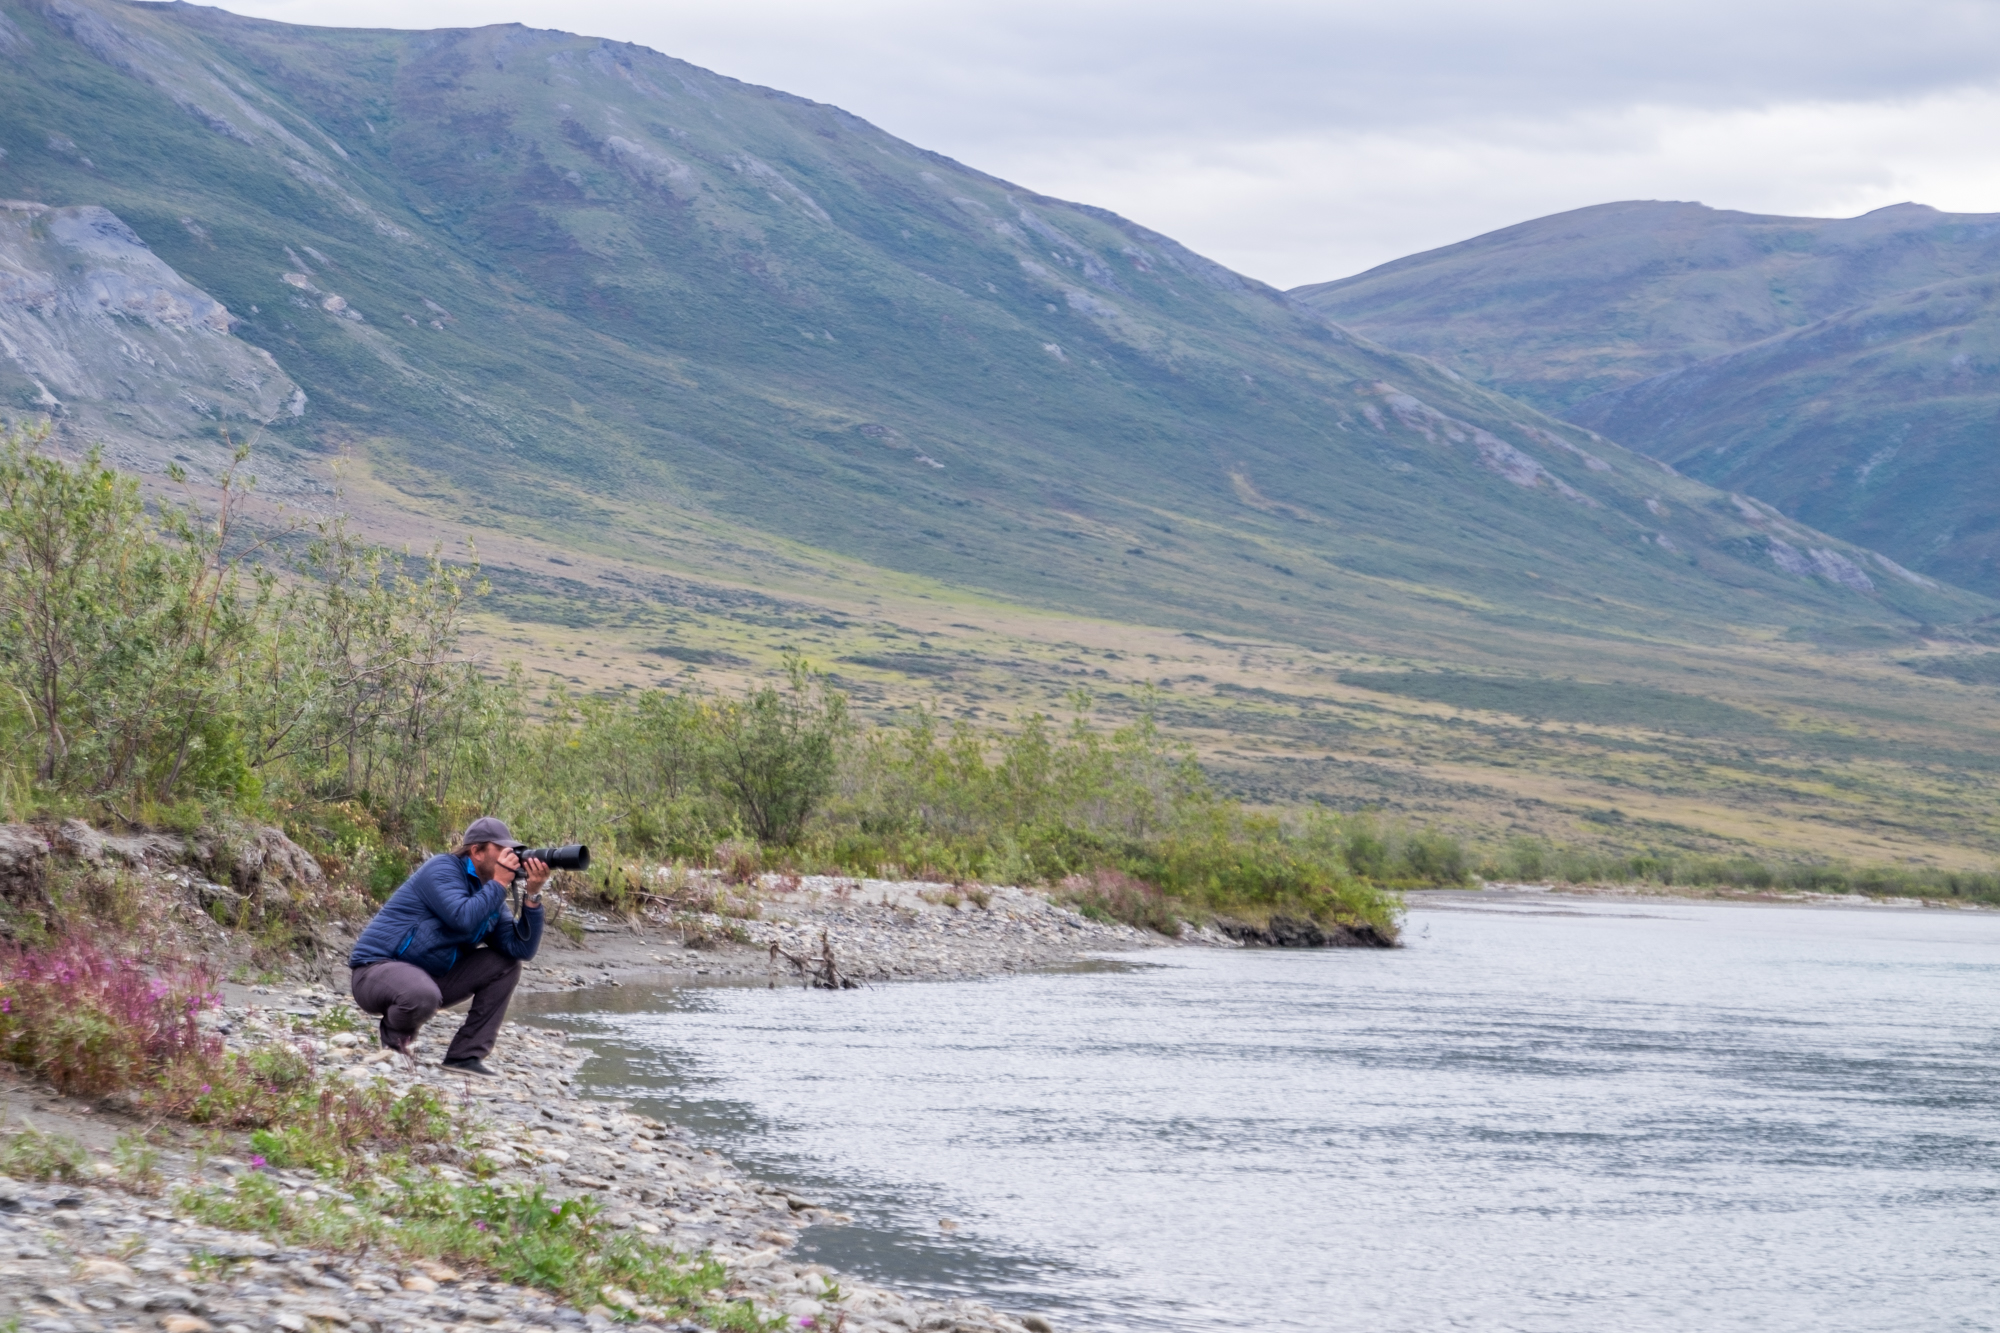 Jonathan shooting with his X-T1 on the banks of the Noatak River in Gates of the Arctic.